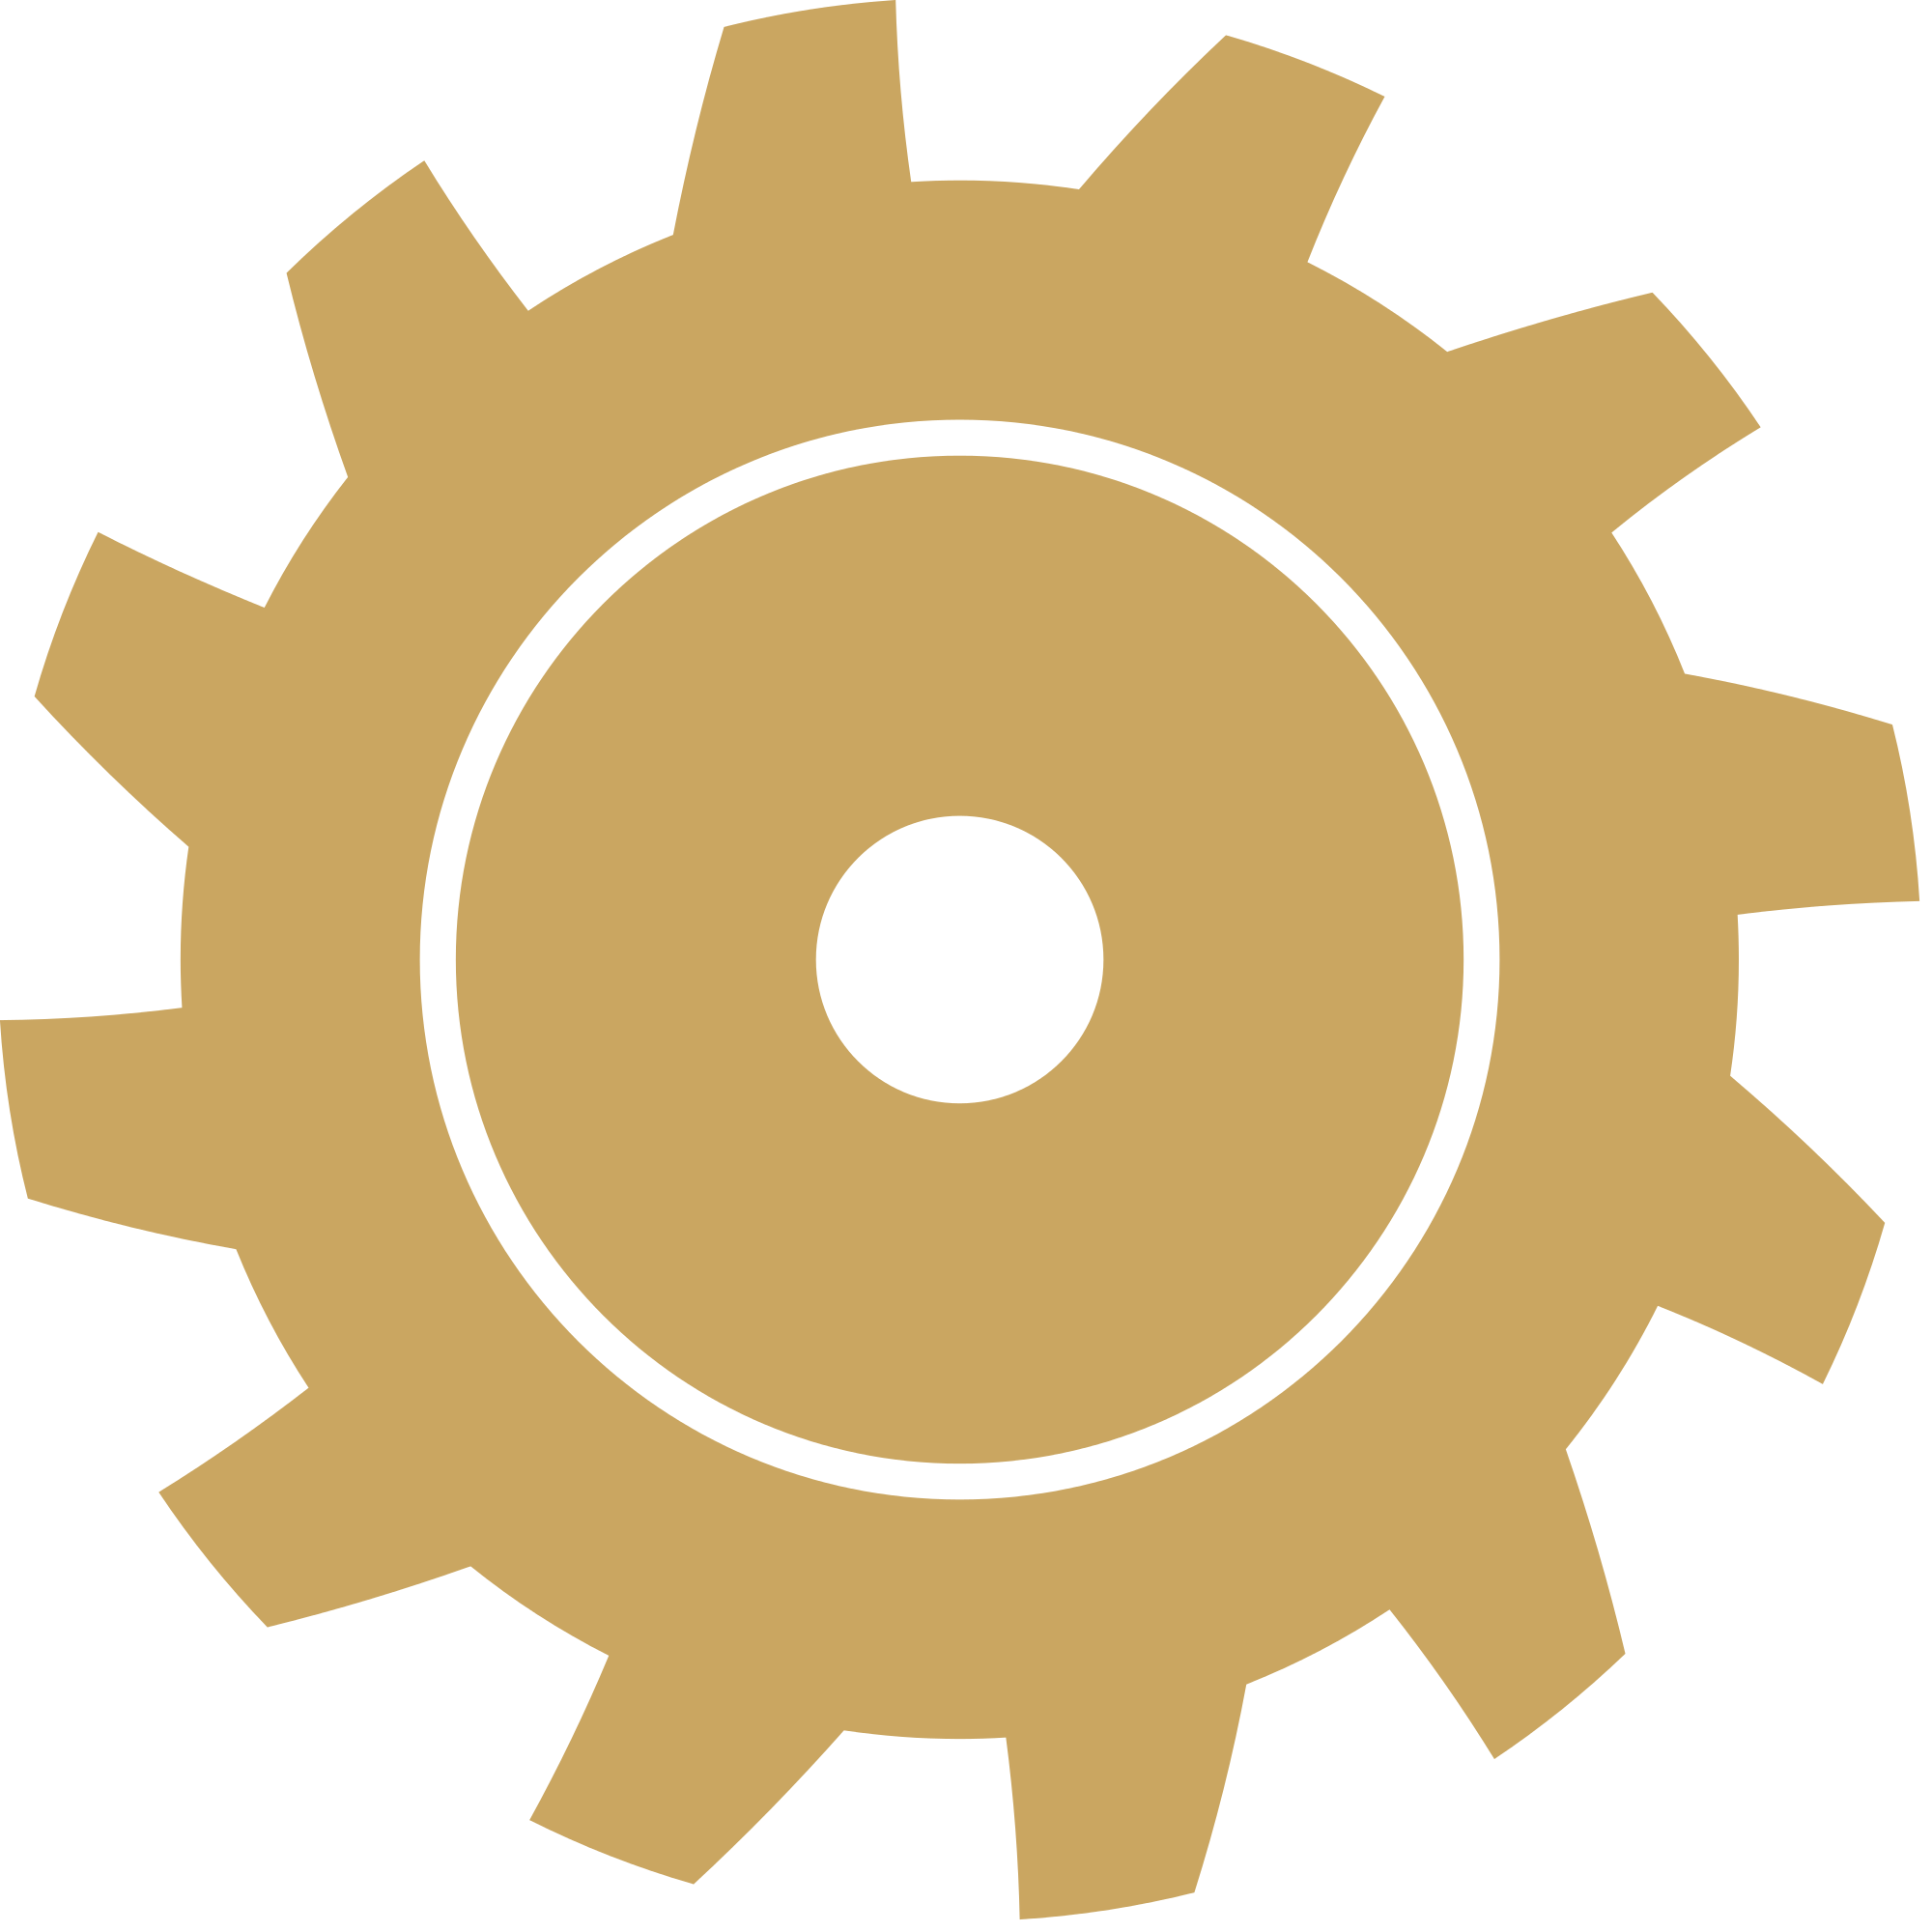 vector library library File gear shape svg. Gold clipart gears